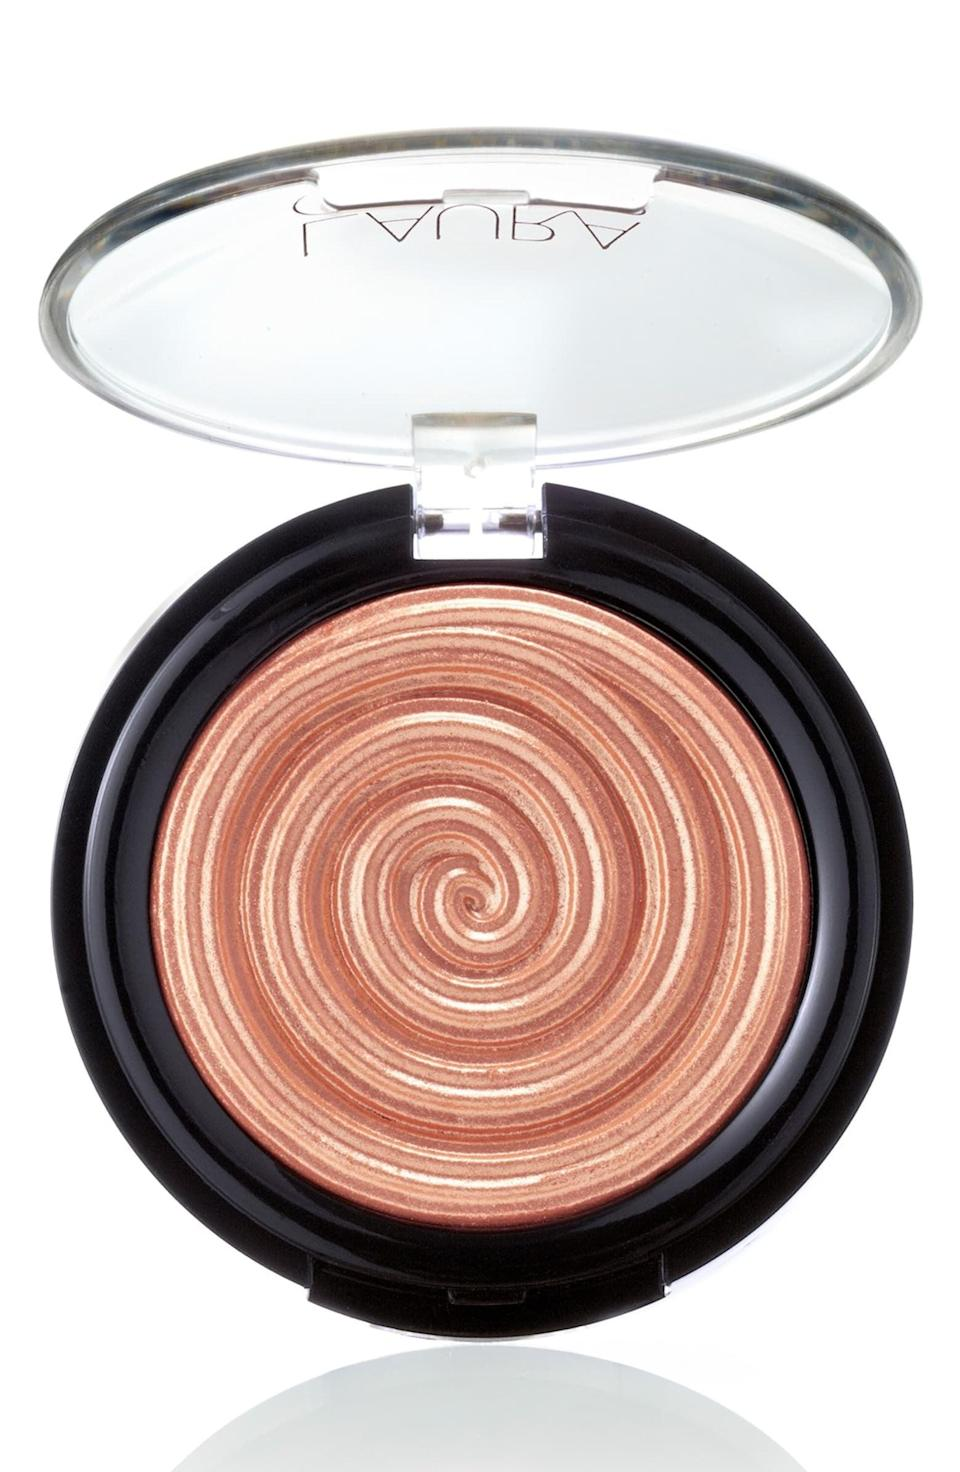 <p>The formula of the <span>Laura Geller Beauty Baked Gelato Swirl Illuminator</span> ($26) blends in seamlessly with your skin, giving you a natural-looking highlight everyone will compliment.</p>